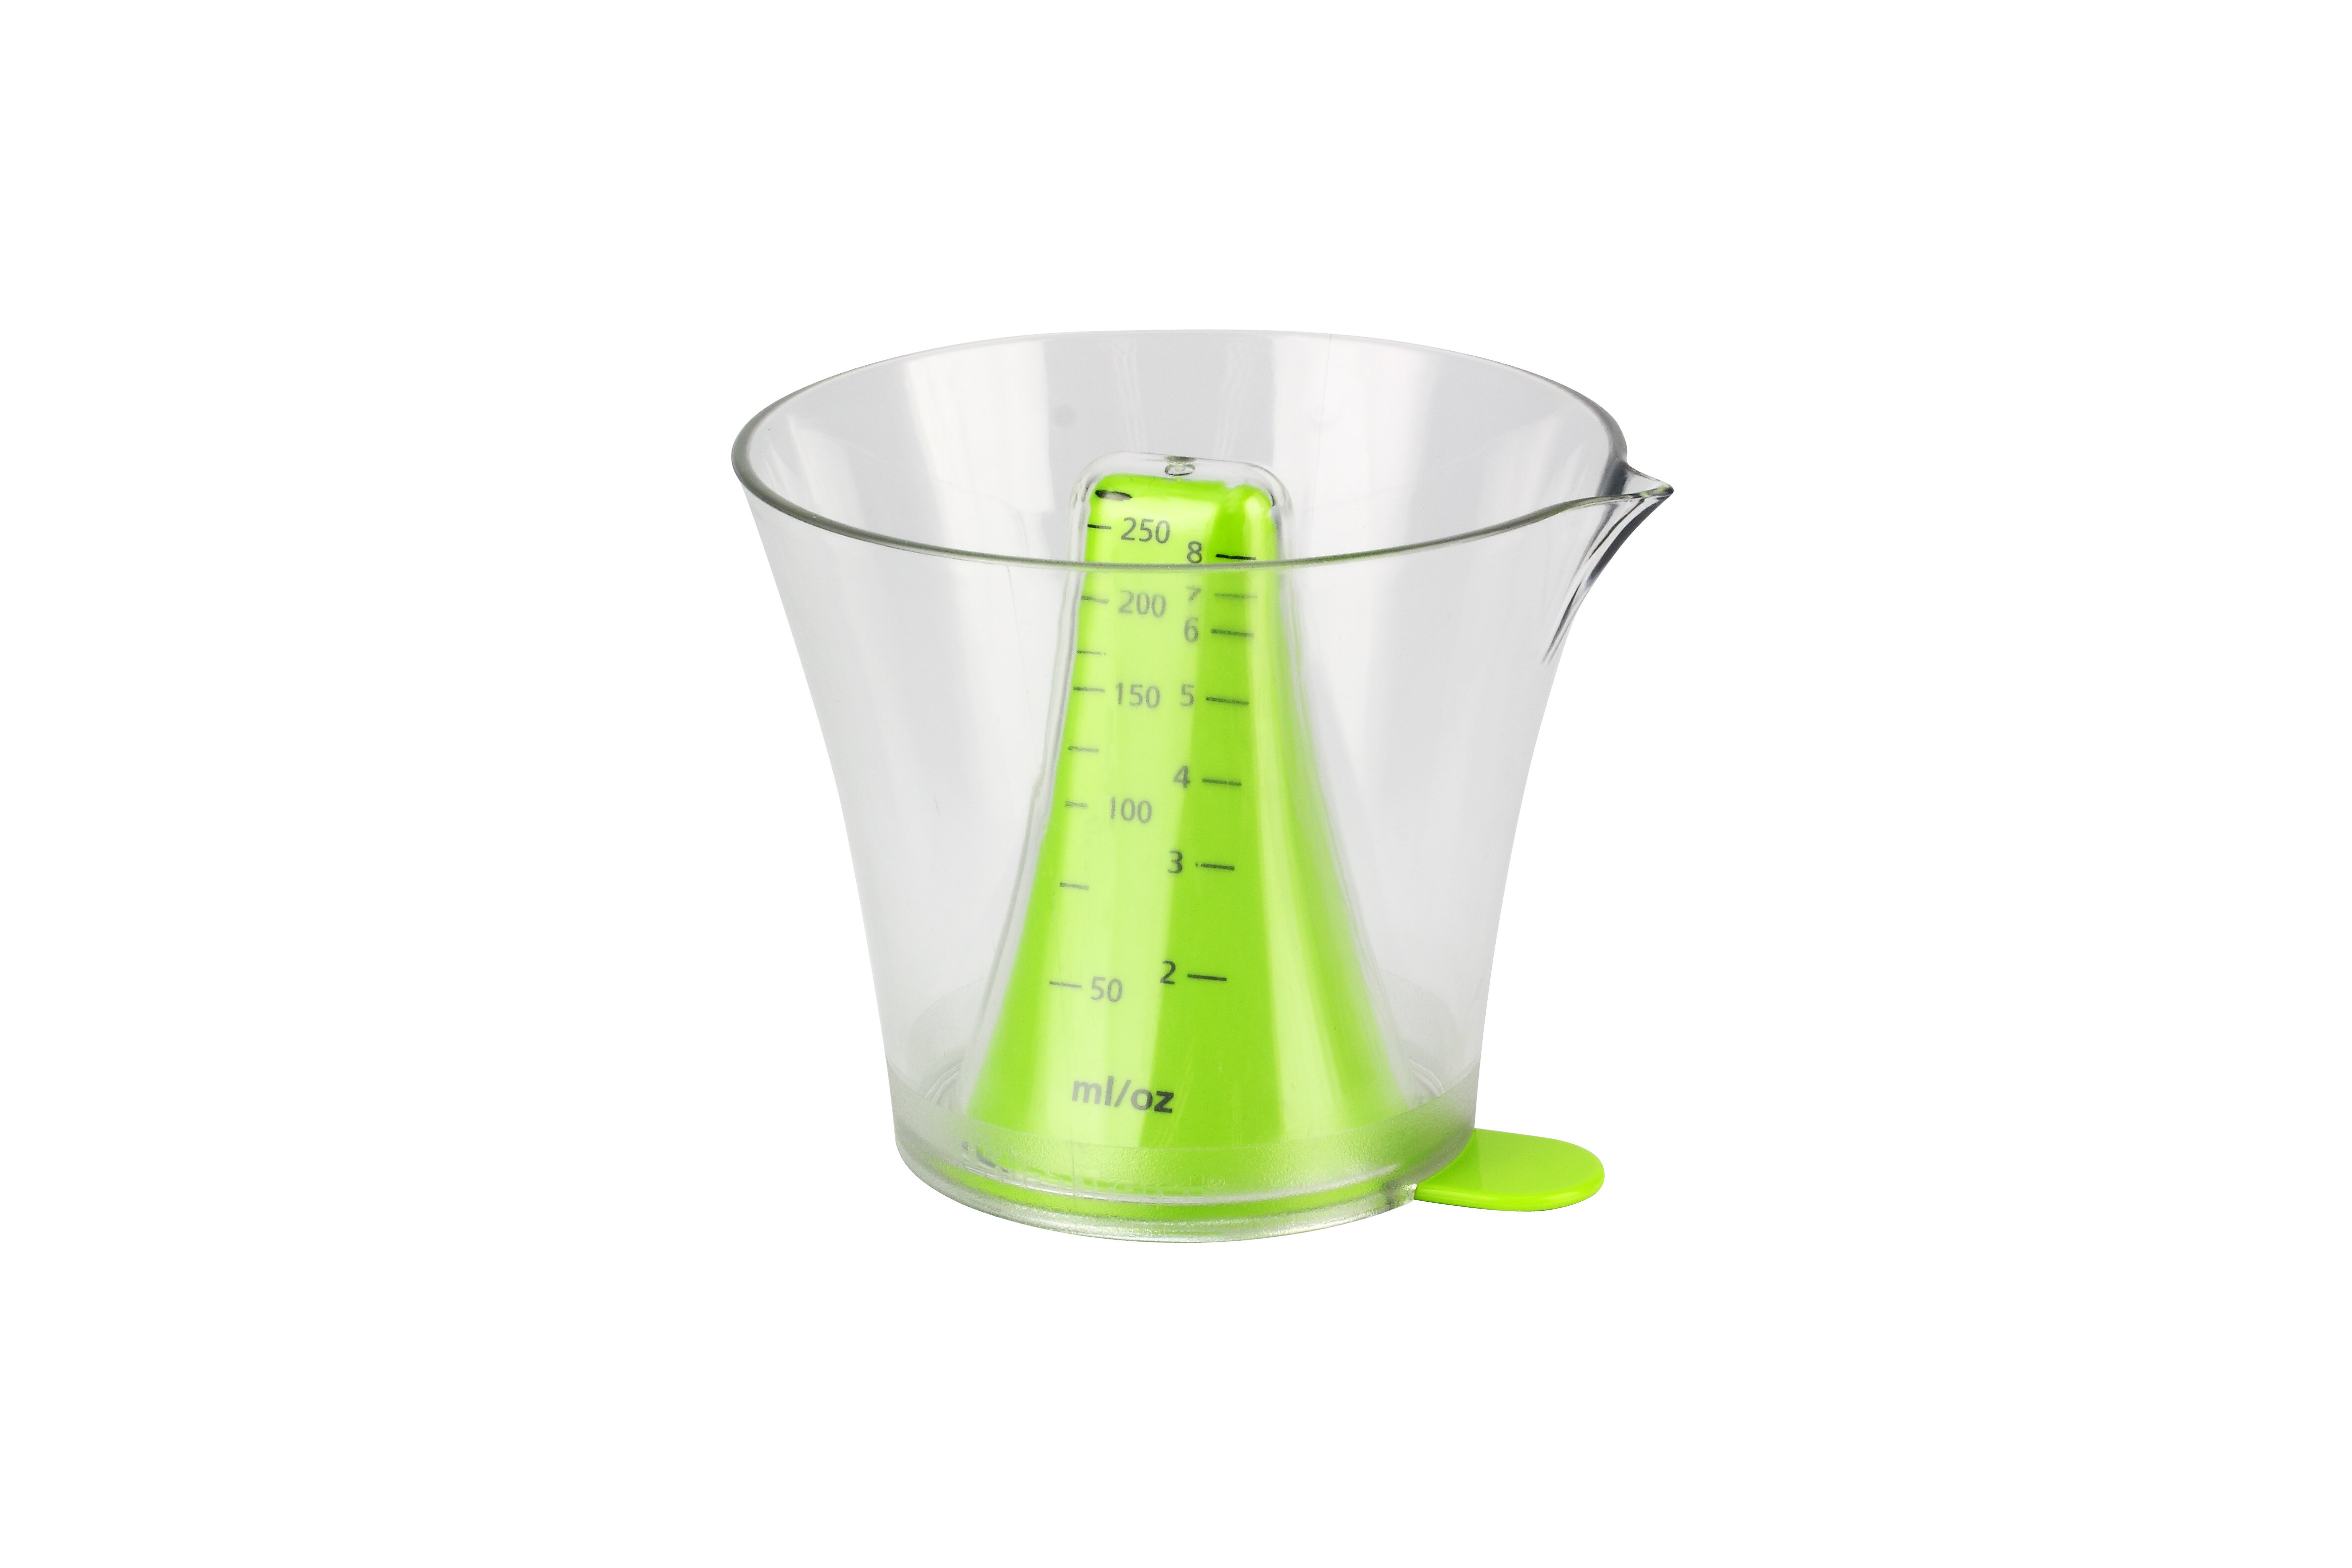 Urban Trend Reverso 2 Pieces Plastic Measuring Cup And Spoon Set Wayfair